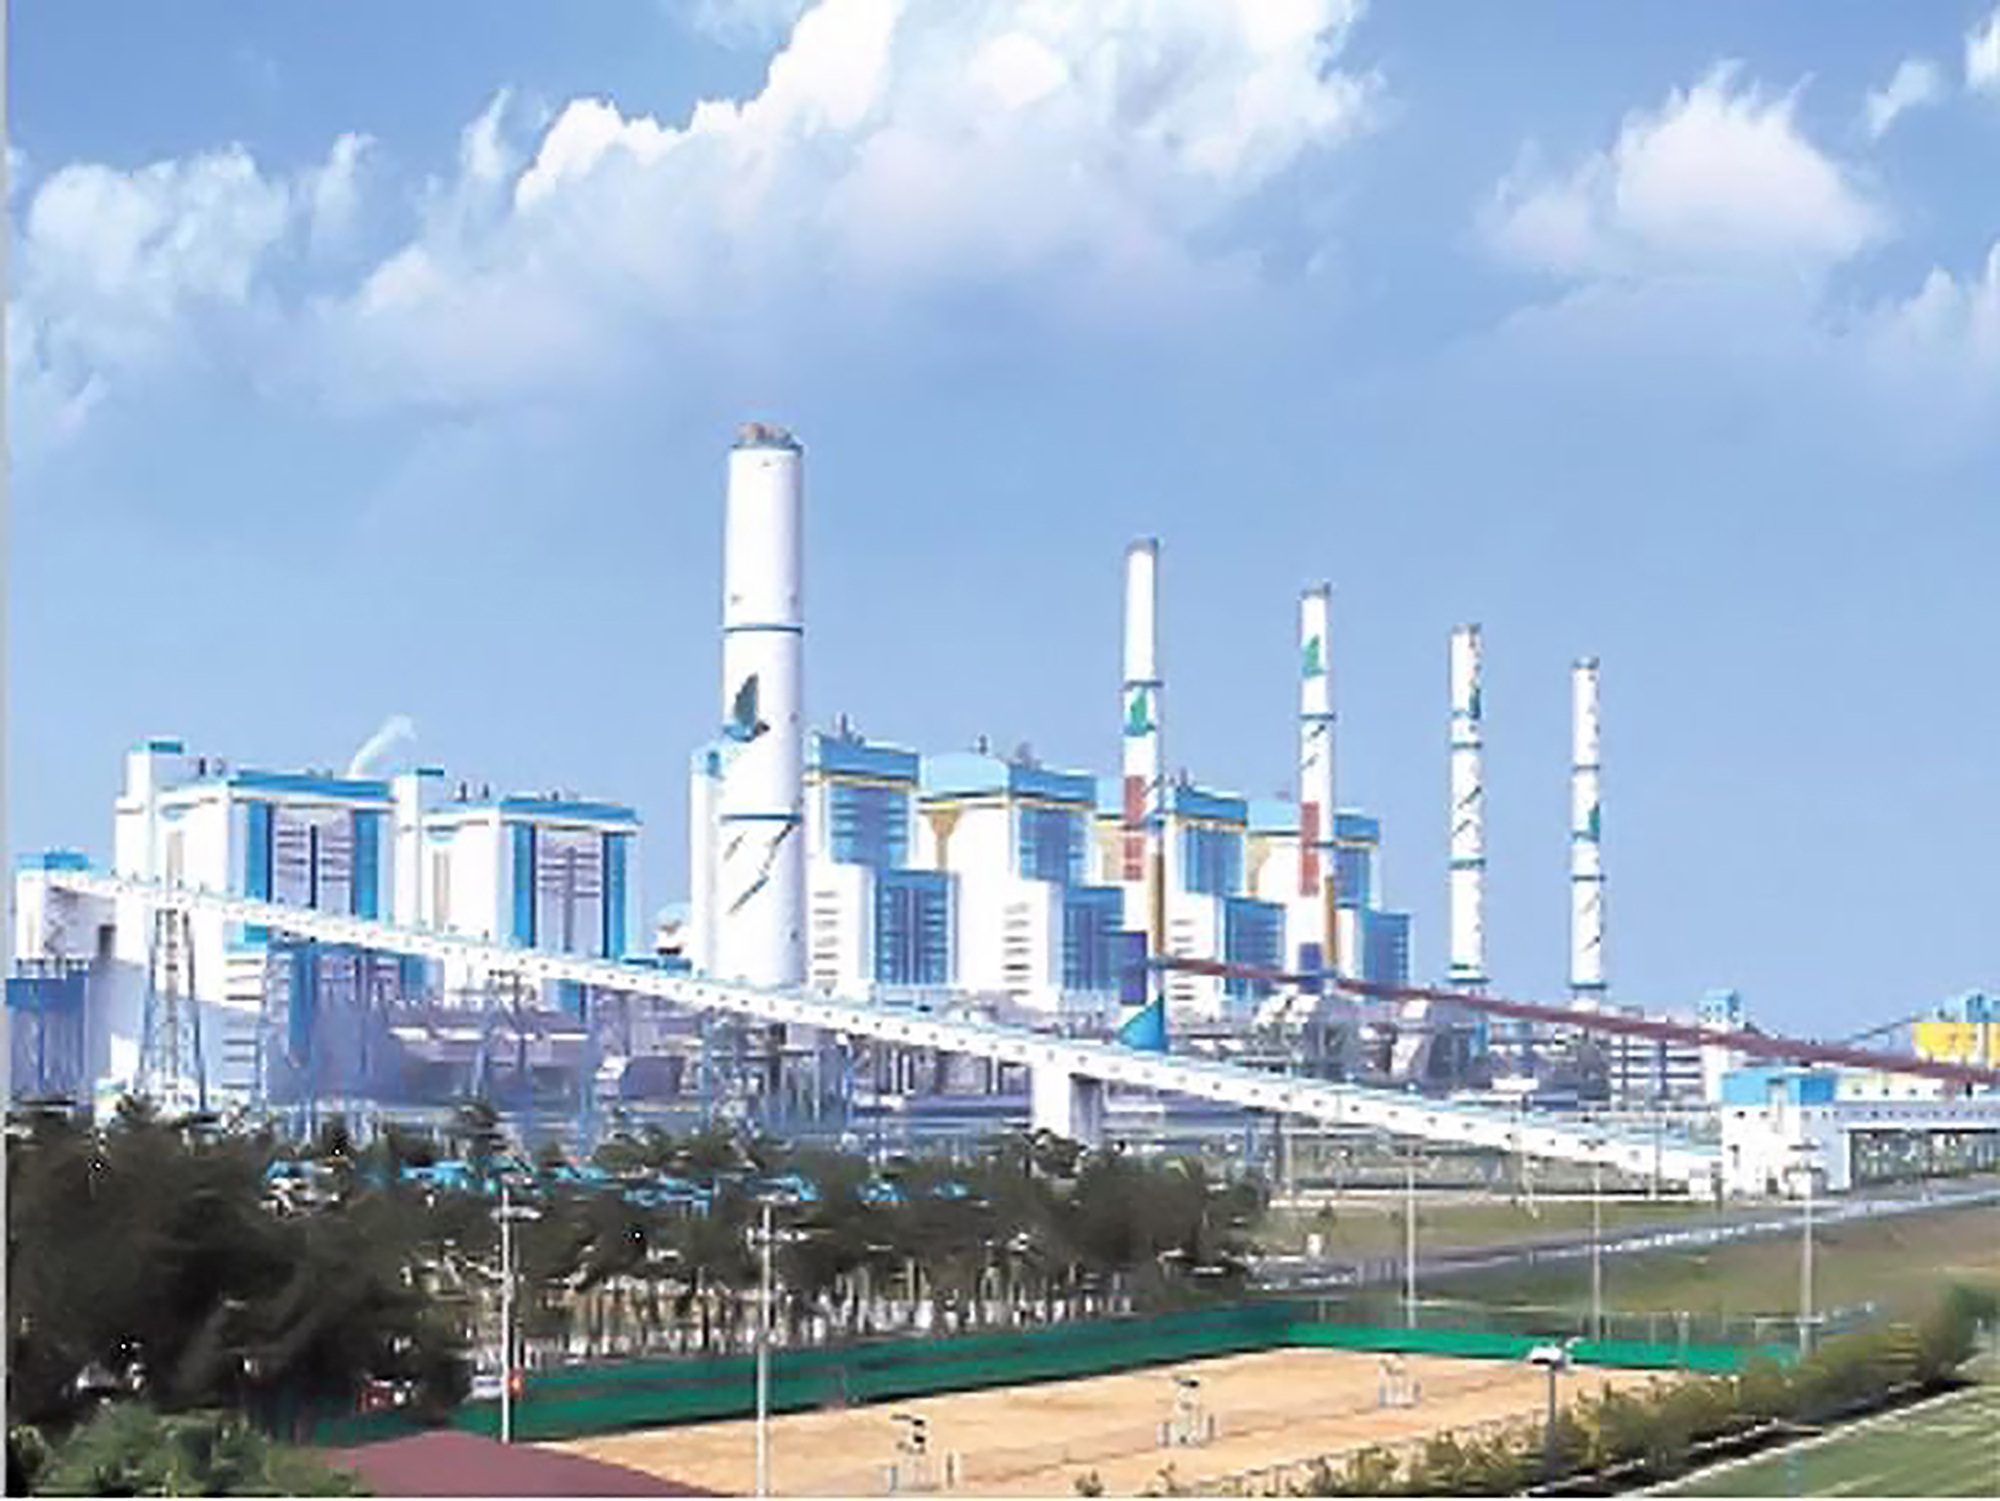 Taean Thermal Power Plant